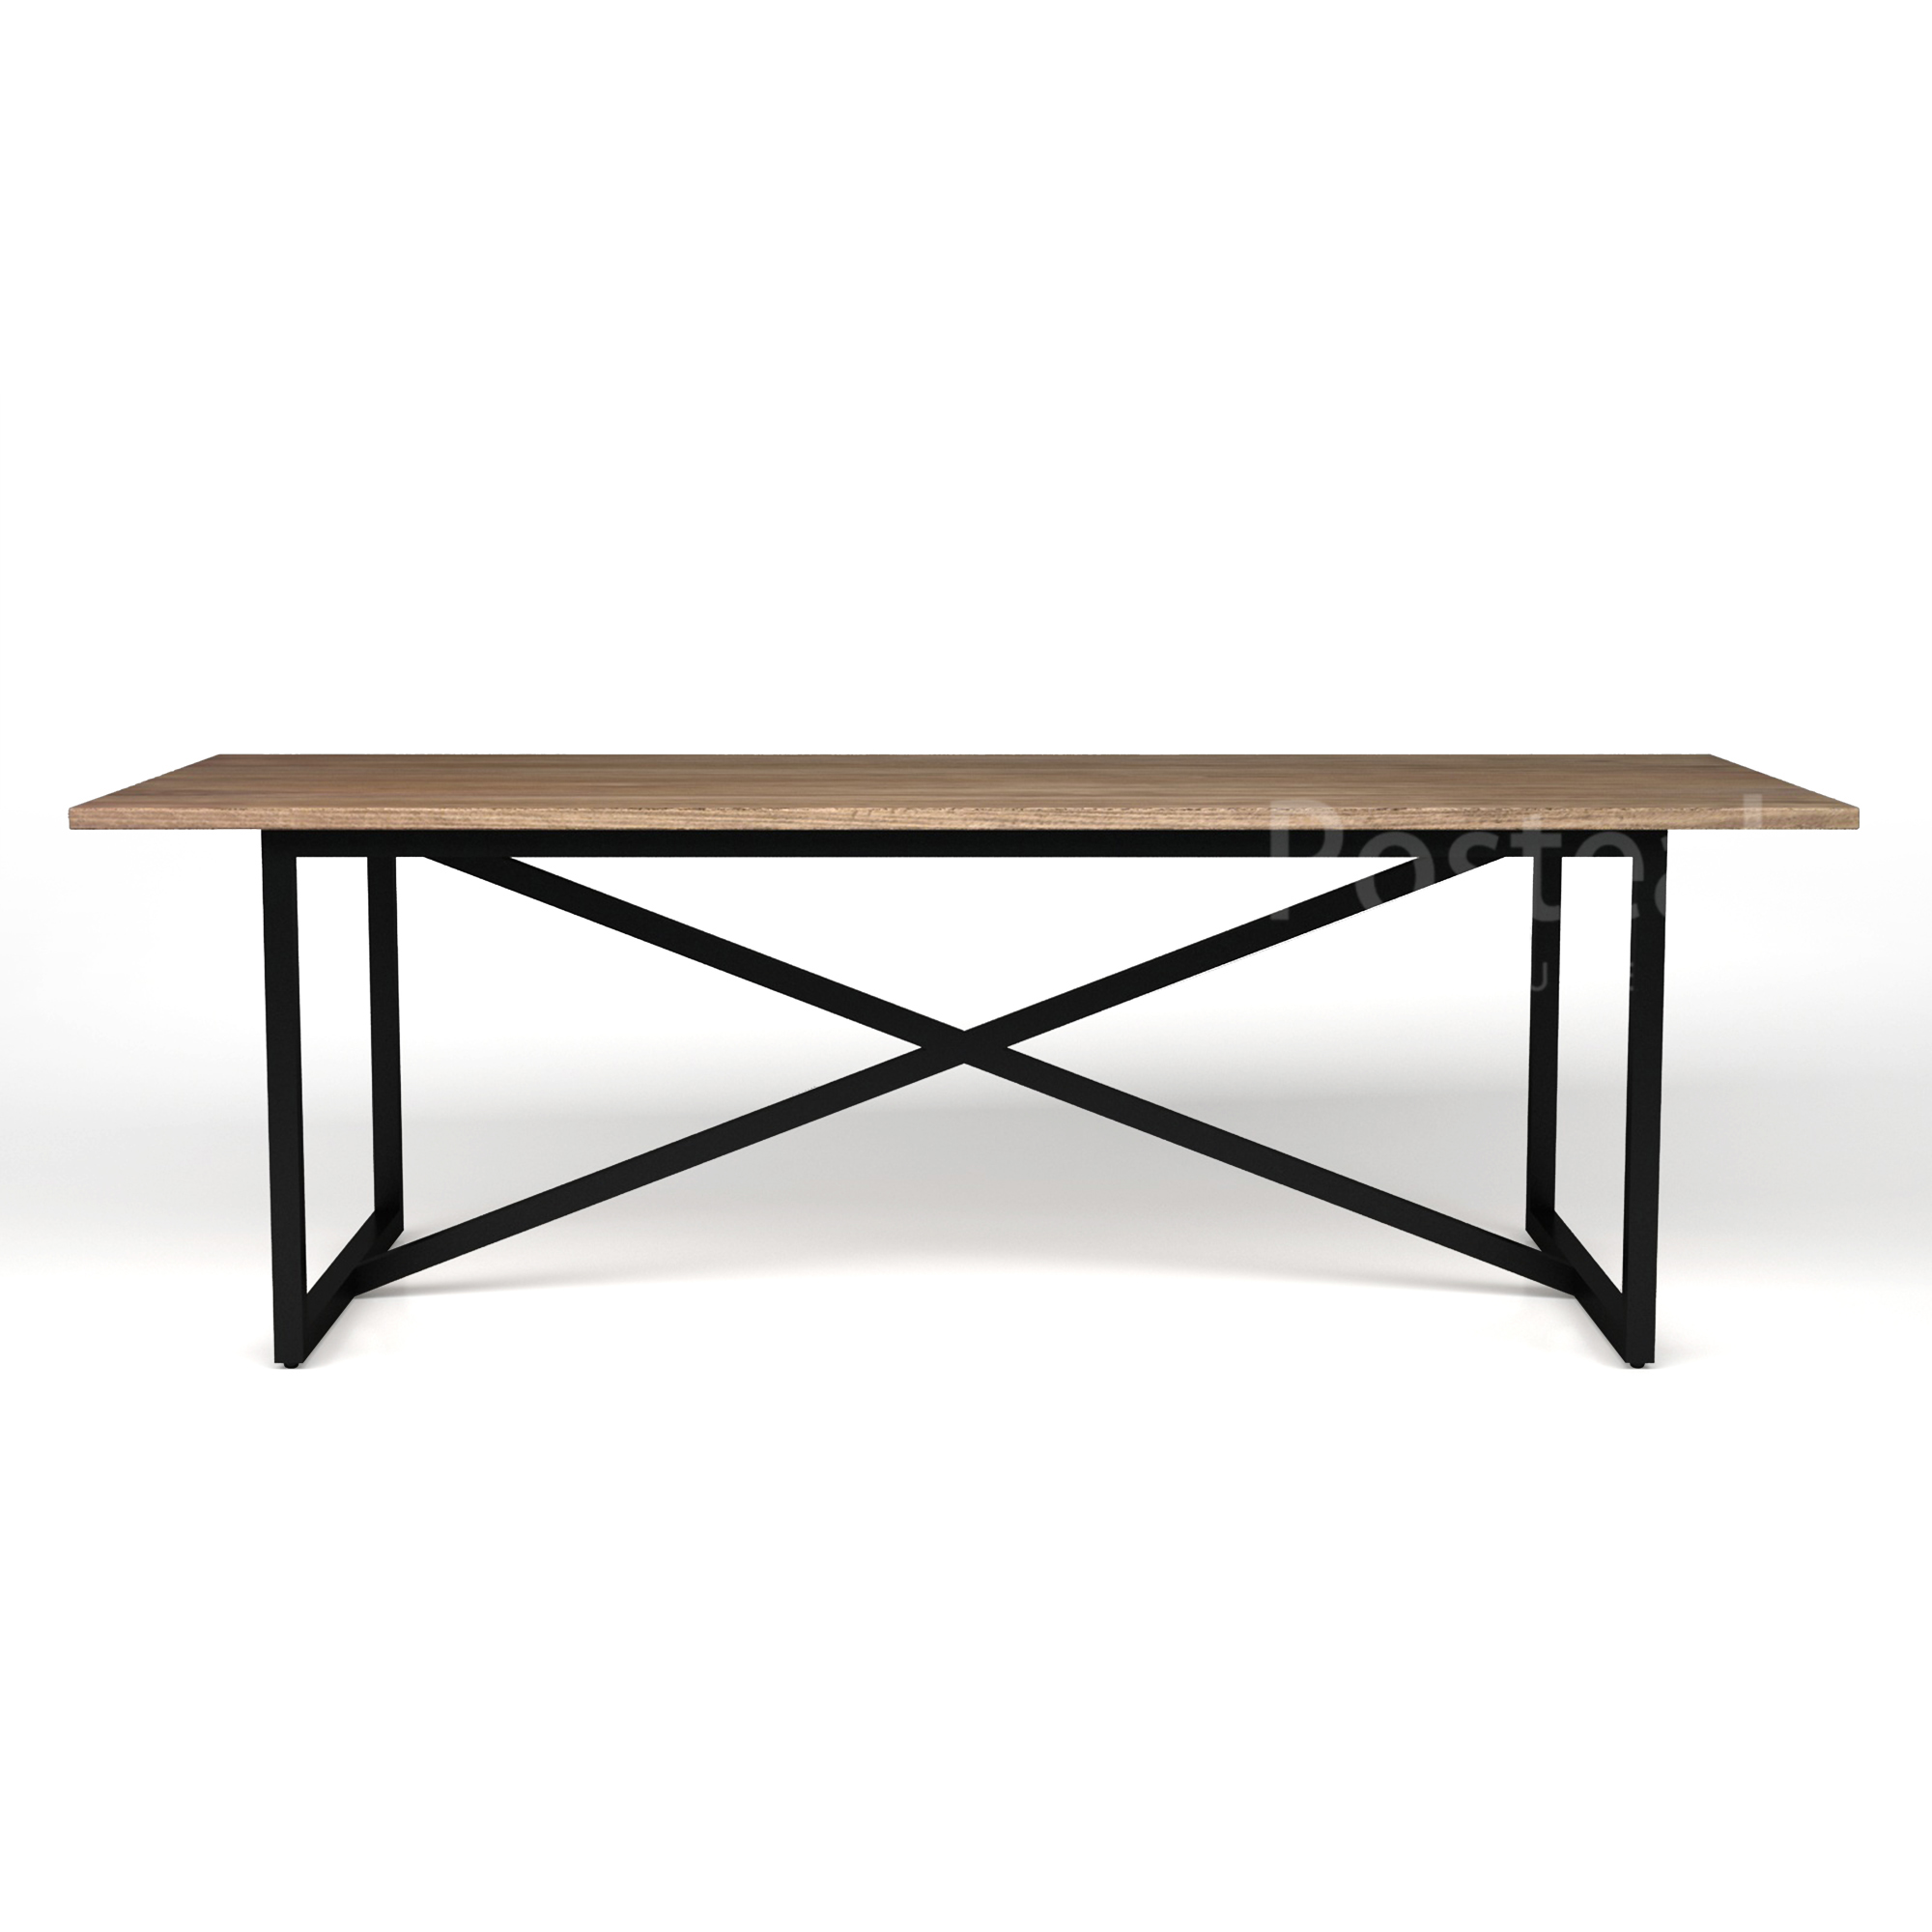 Square Rectangular Modern Dining Table Legs Industrial